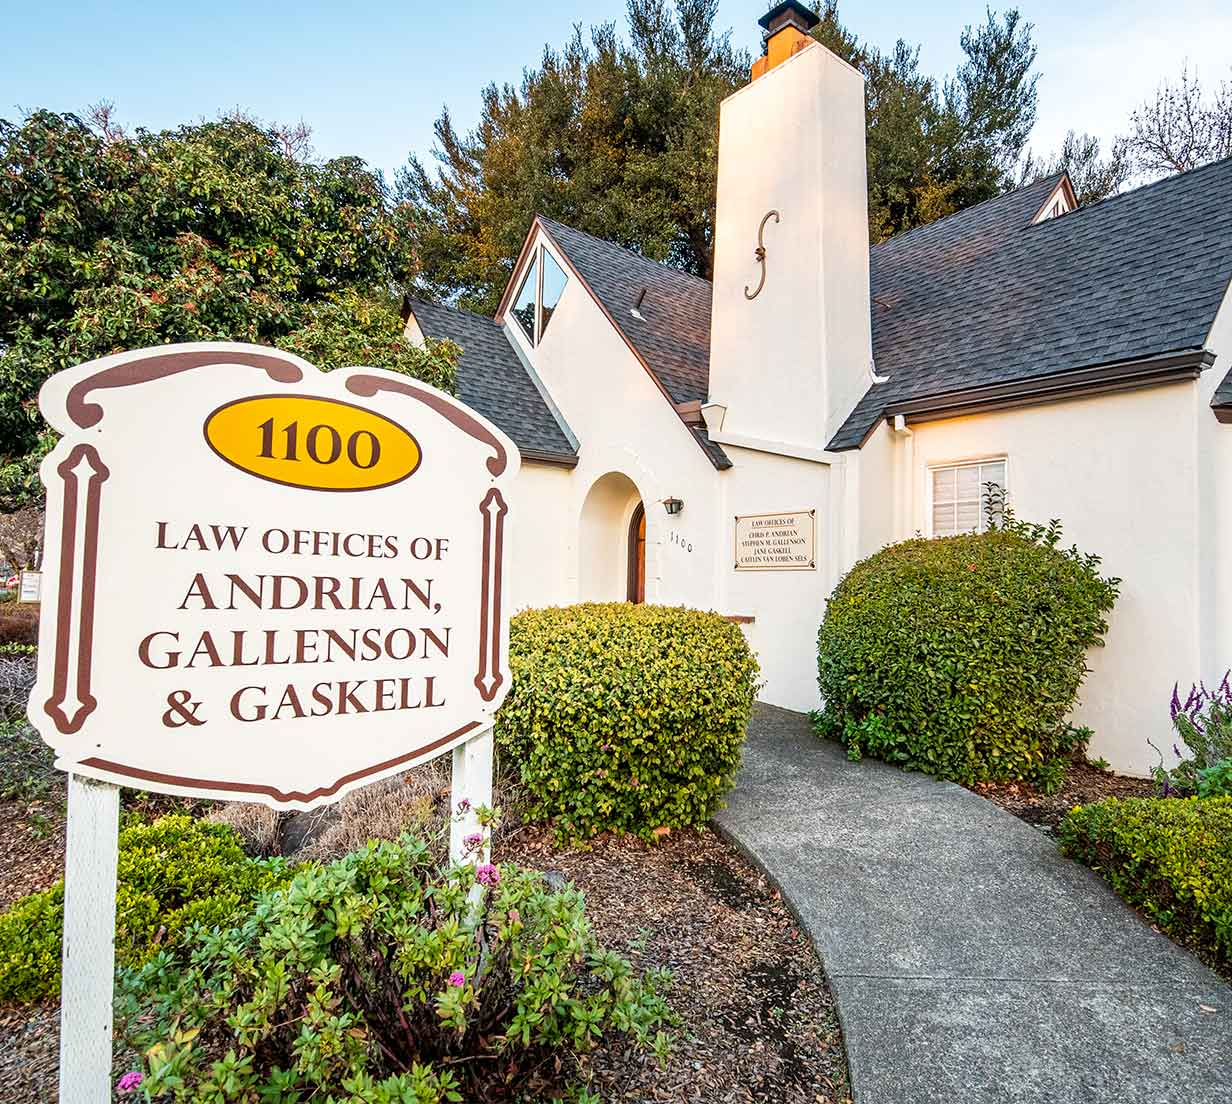 An outside images of the law offices of Andrian, Gallenson & Gaskell